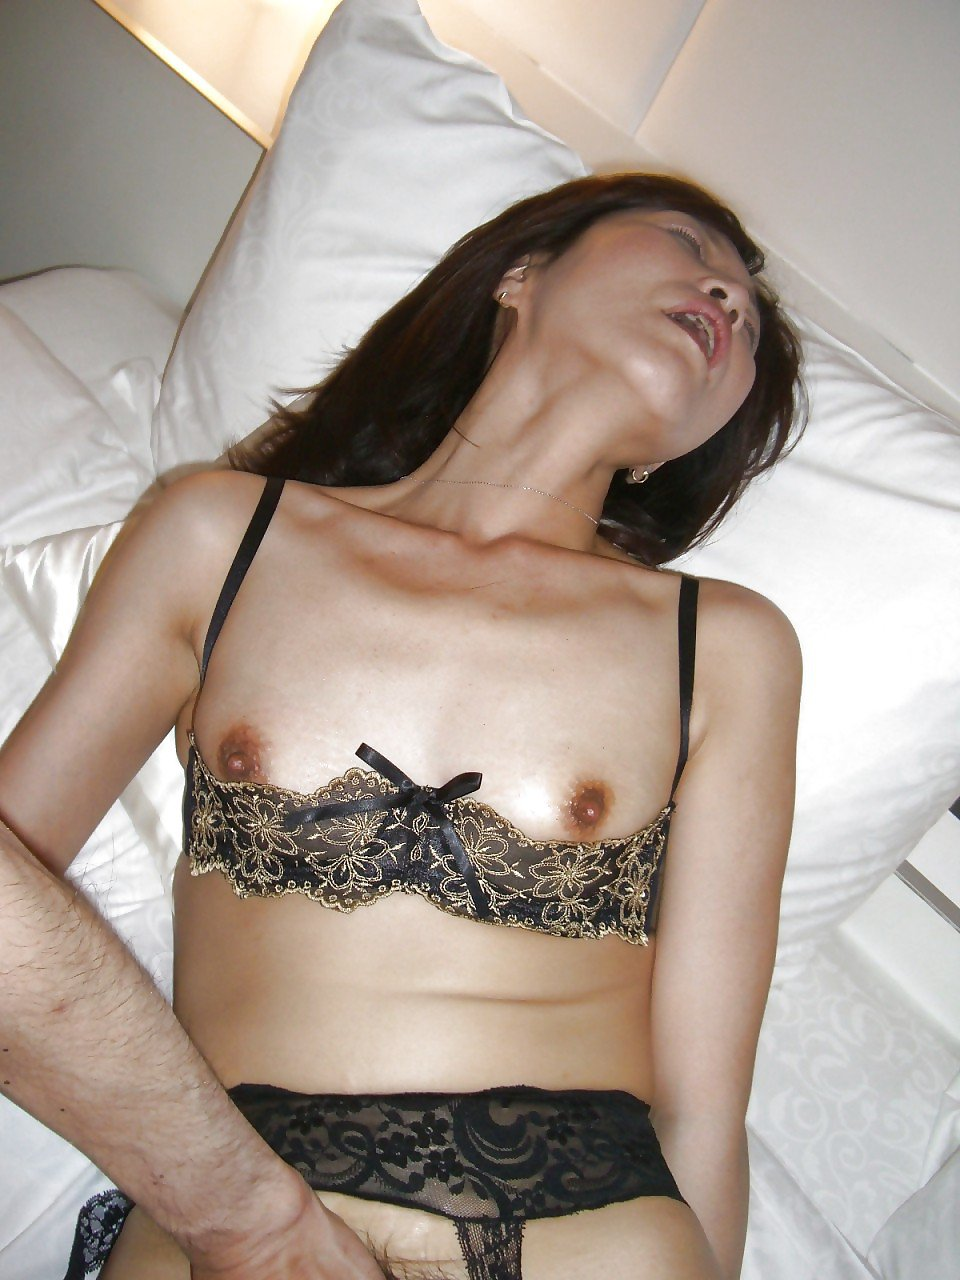 chinese wives nude photoshoot